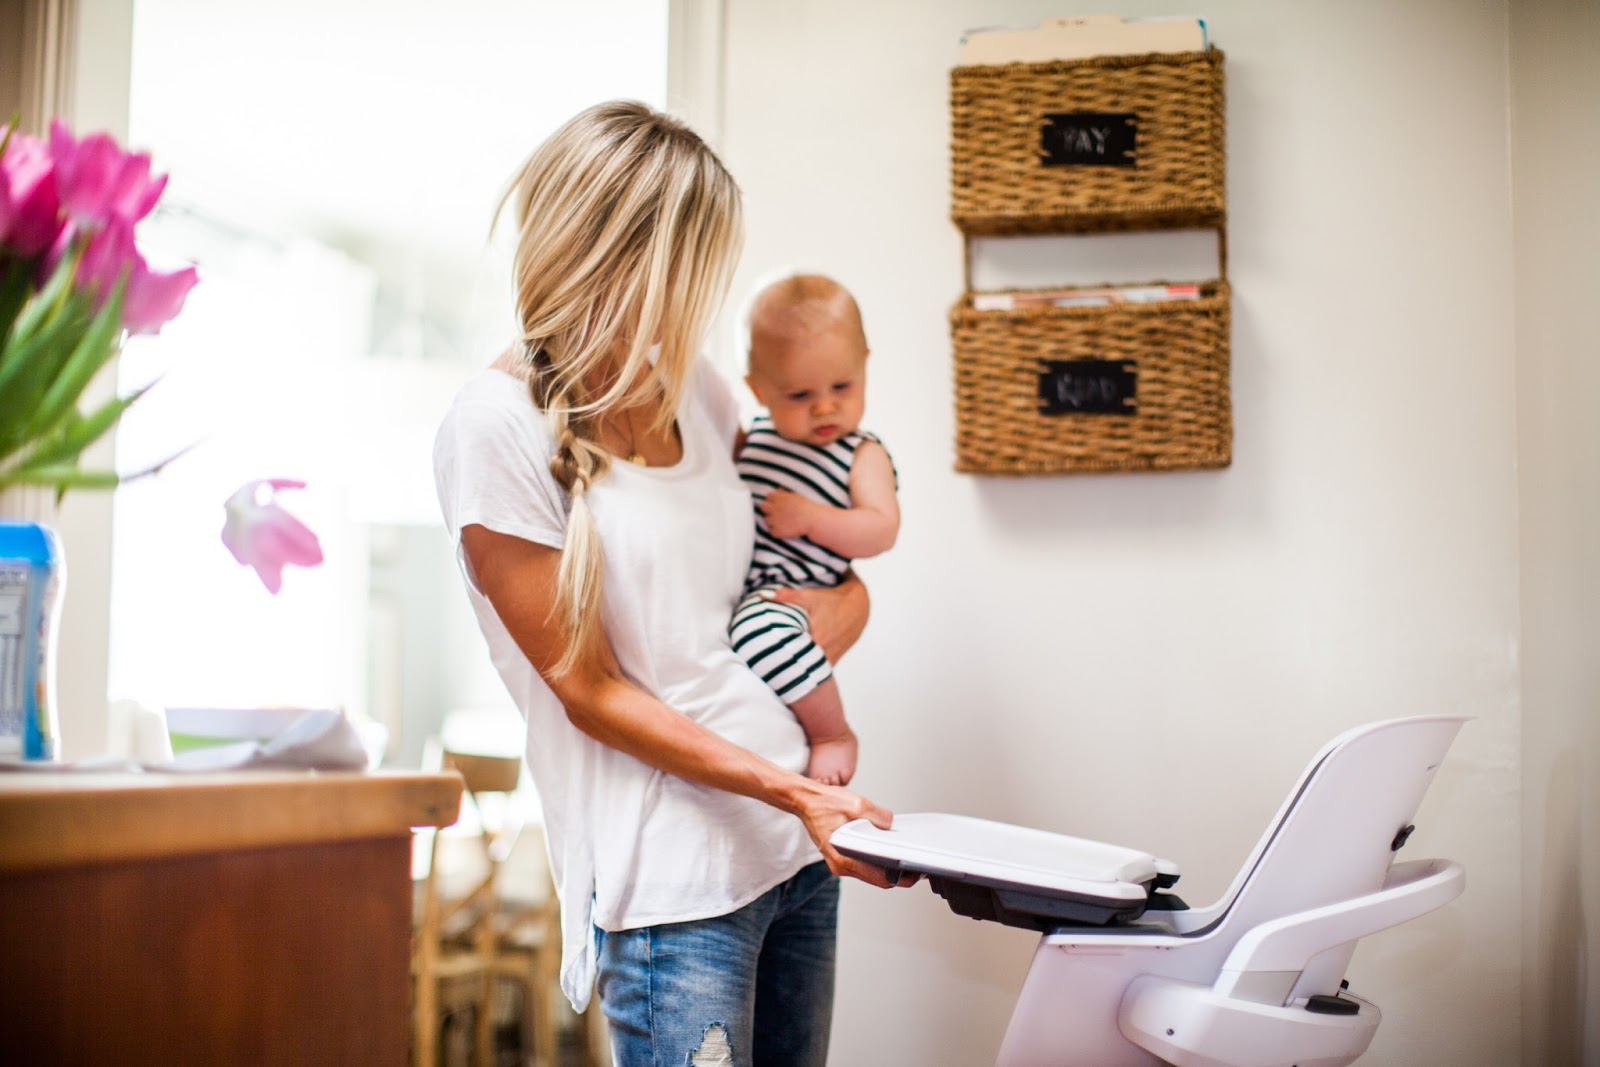 4moms High Chair Review Portable Salon Mealtime Made Easy 43 A Giveaway Elle Apparel By Leanne